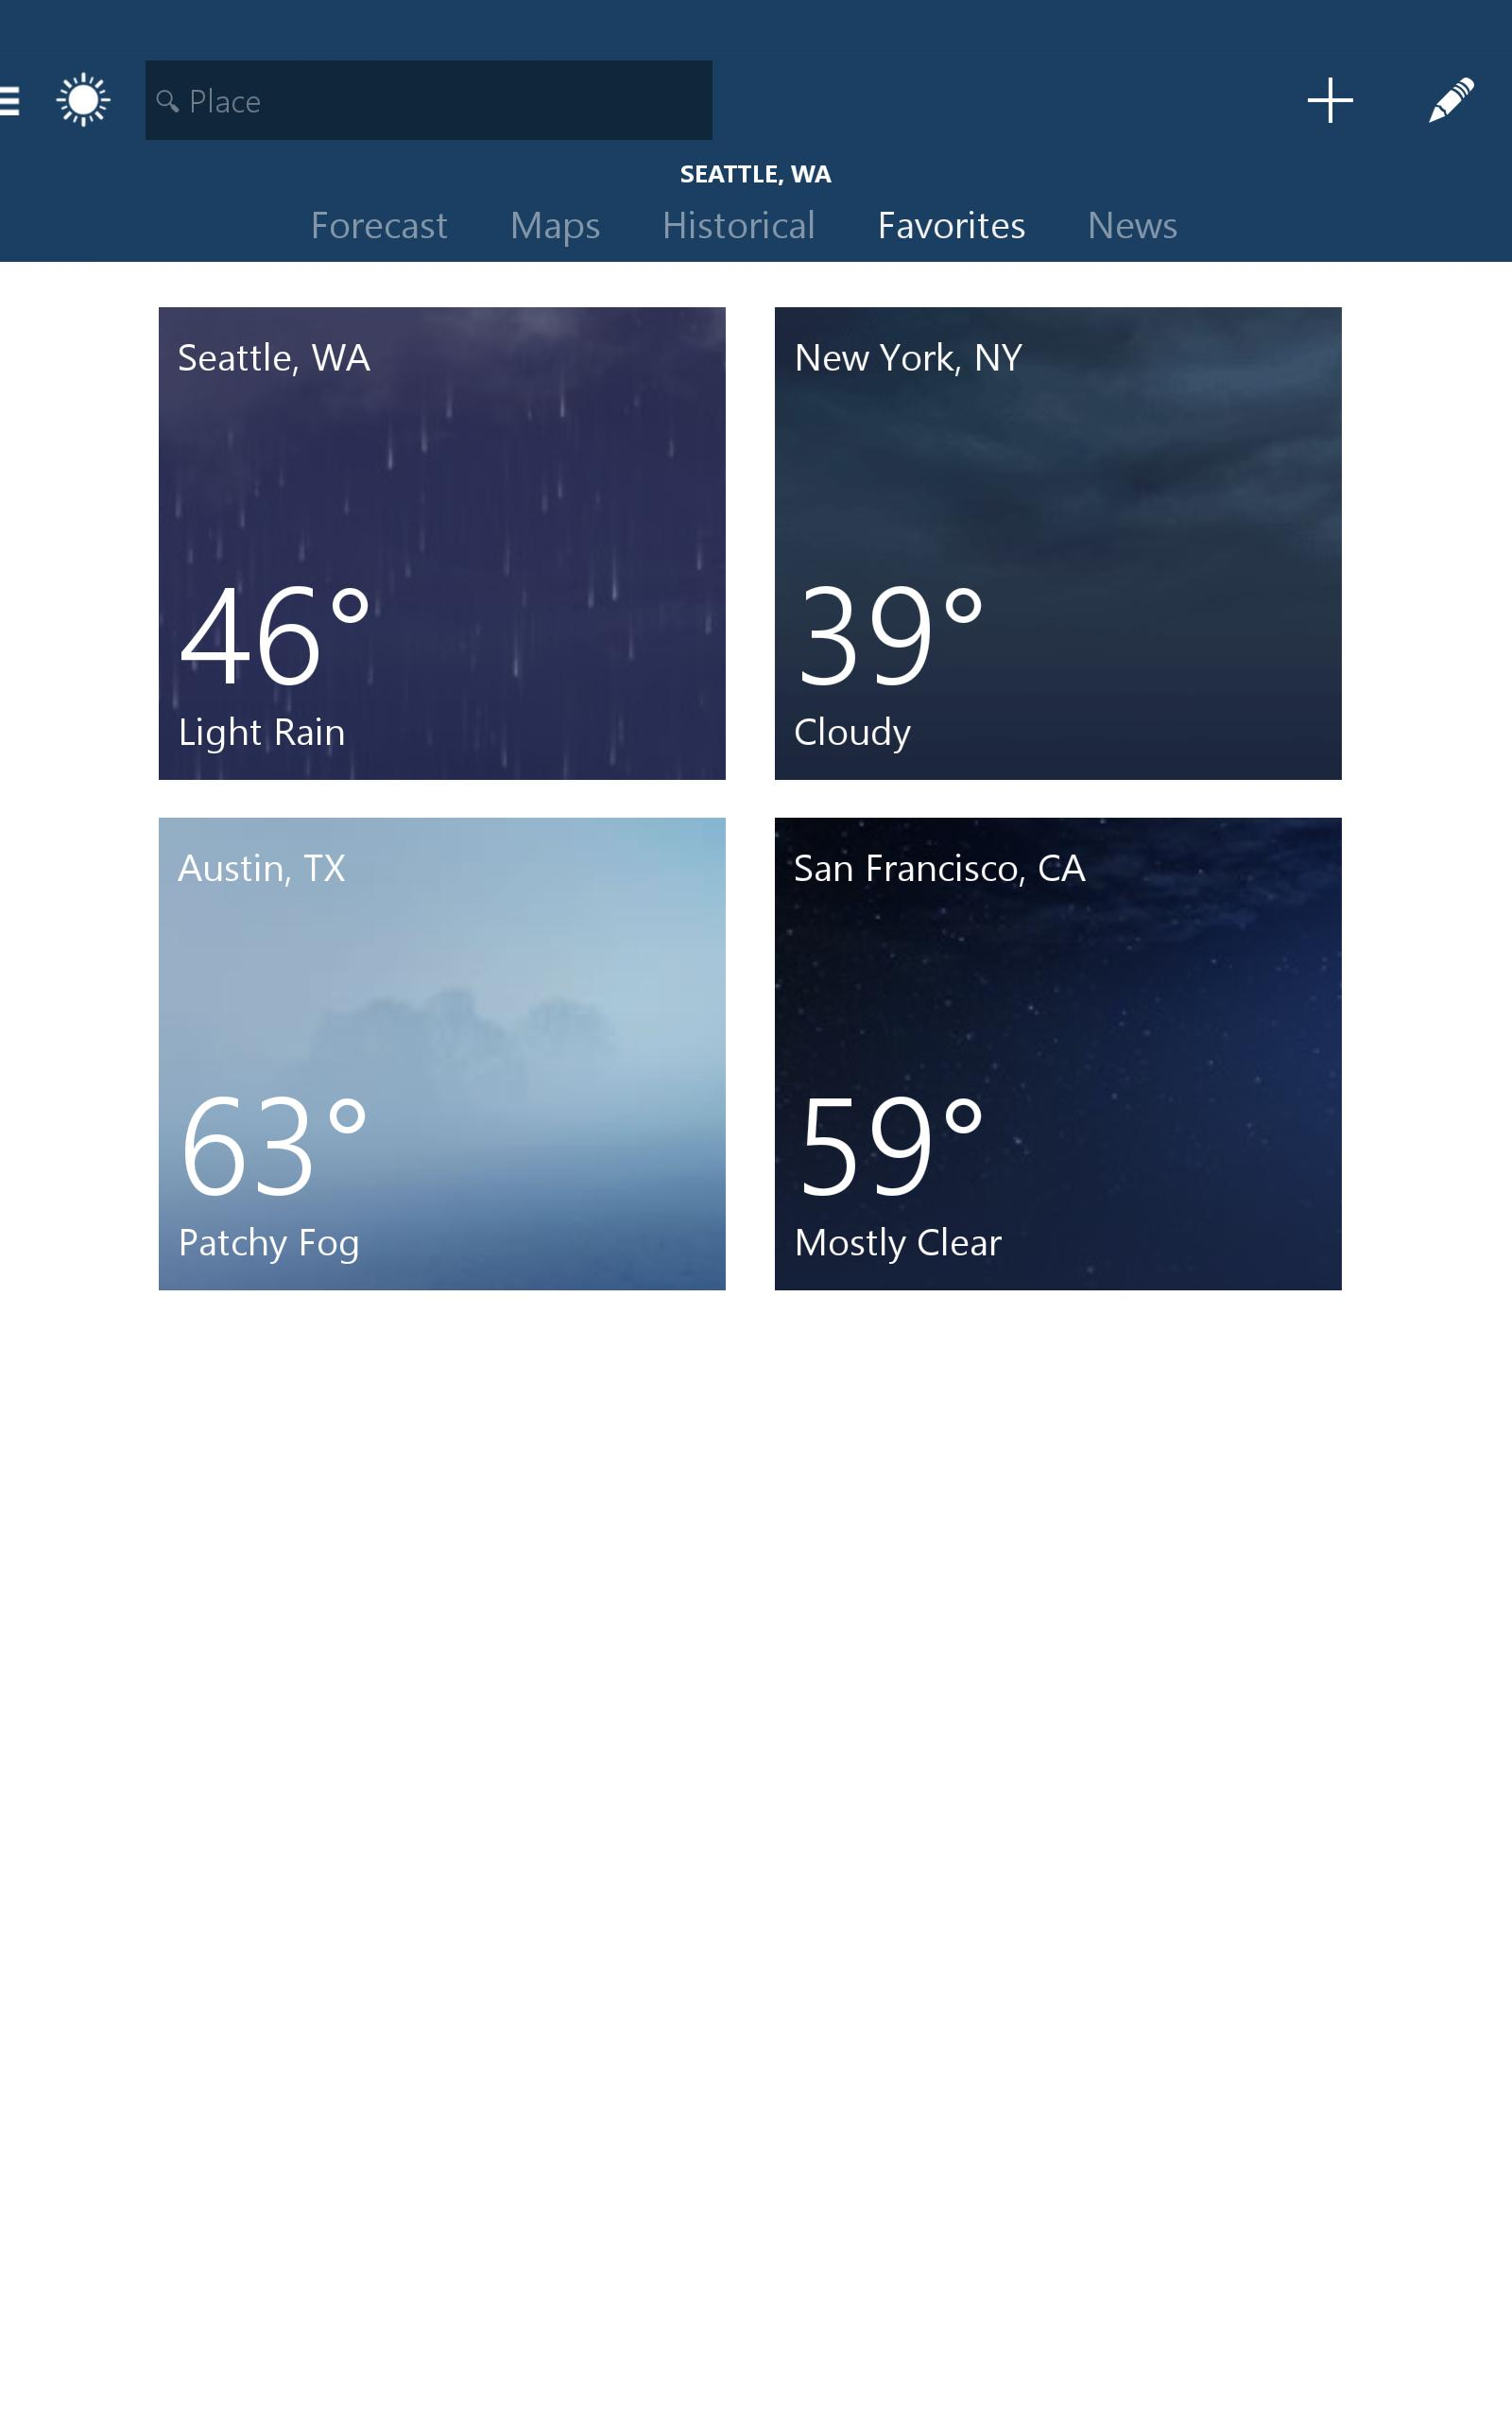 MSN Weather - Forecast & Maps 1.2.0 Screenshot 8